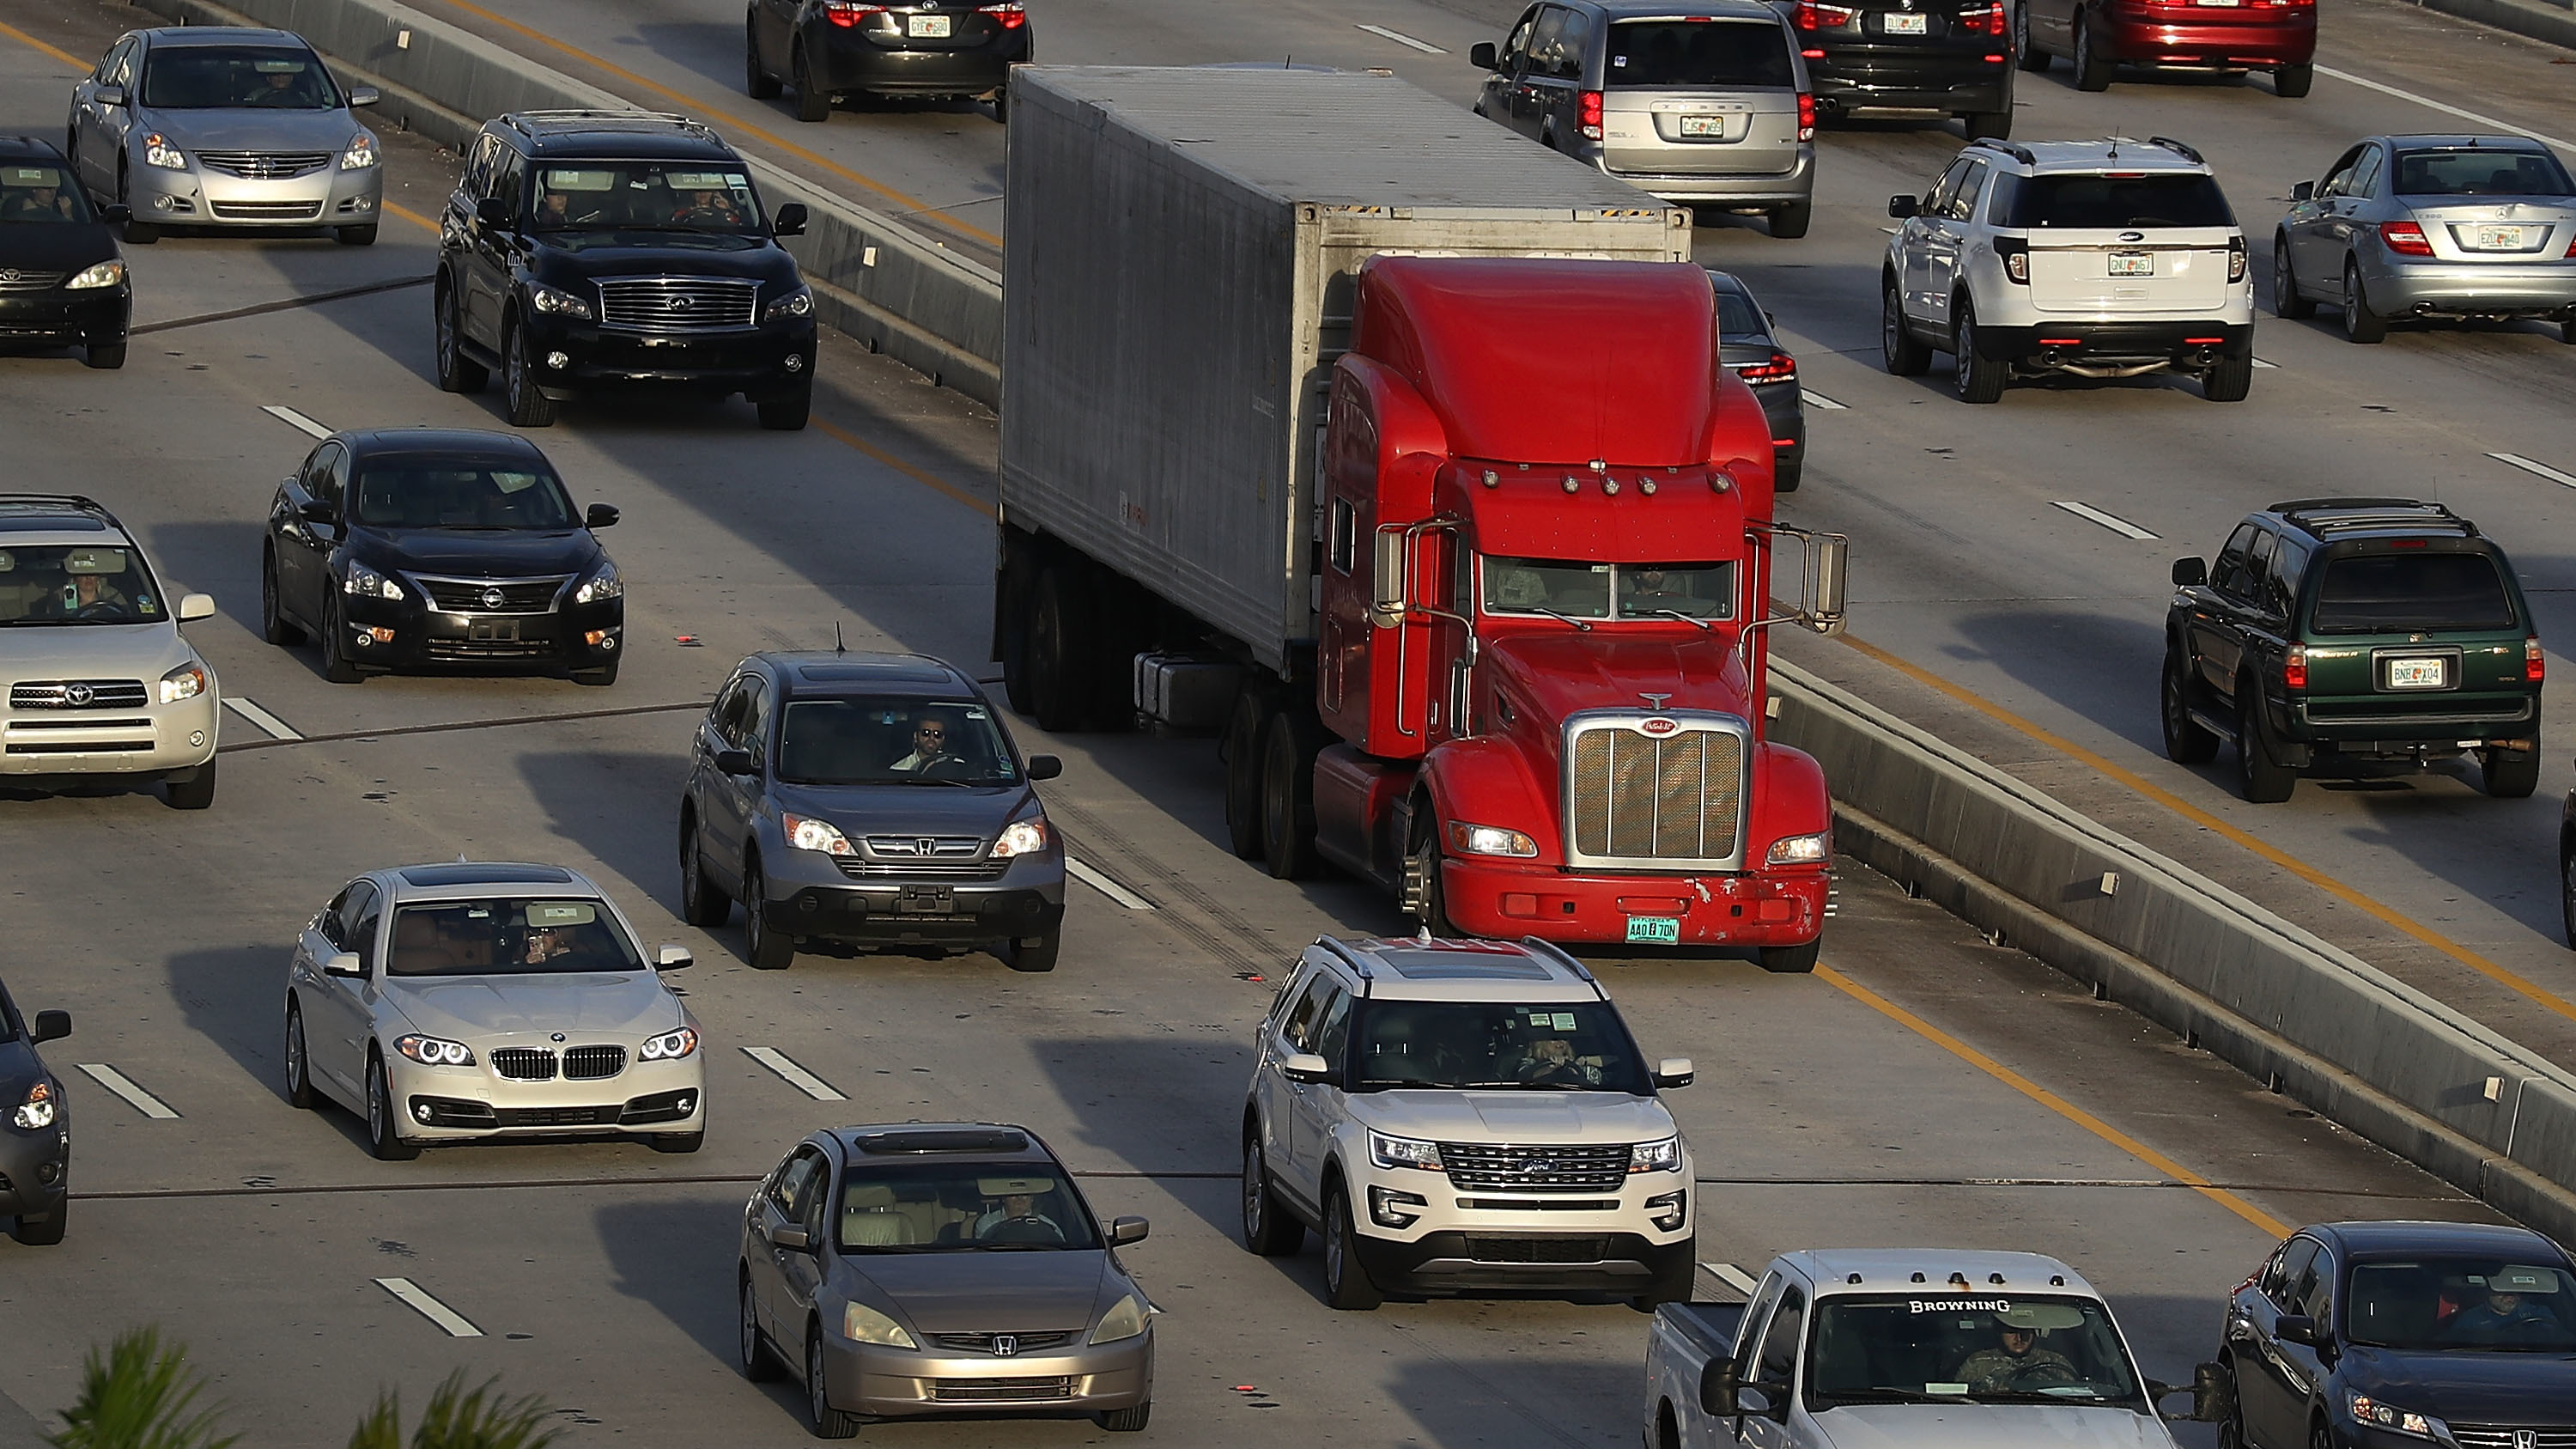 A tractor-trailer rolls along the highway in Miami last November. The trucking industry needs to hire almost 900,000 more drivers to meet rising demand, according to an industry analysis.